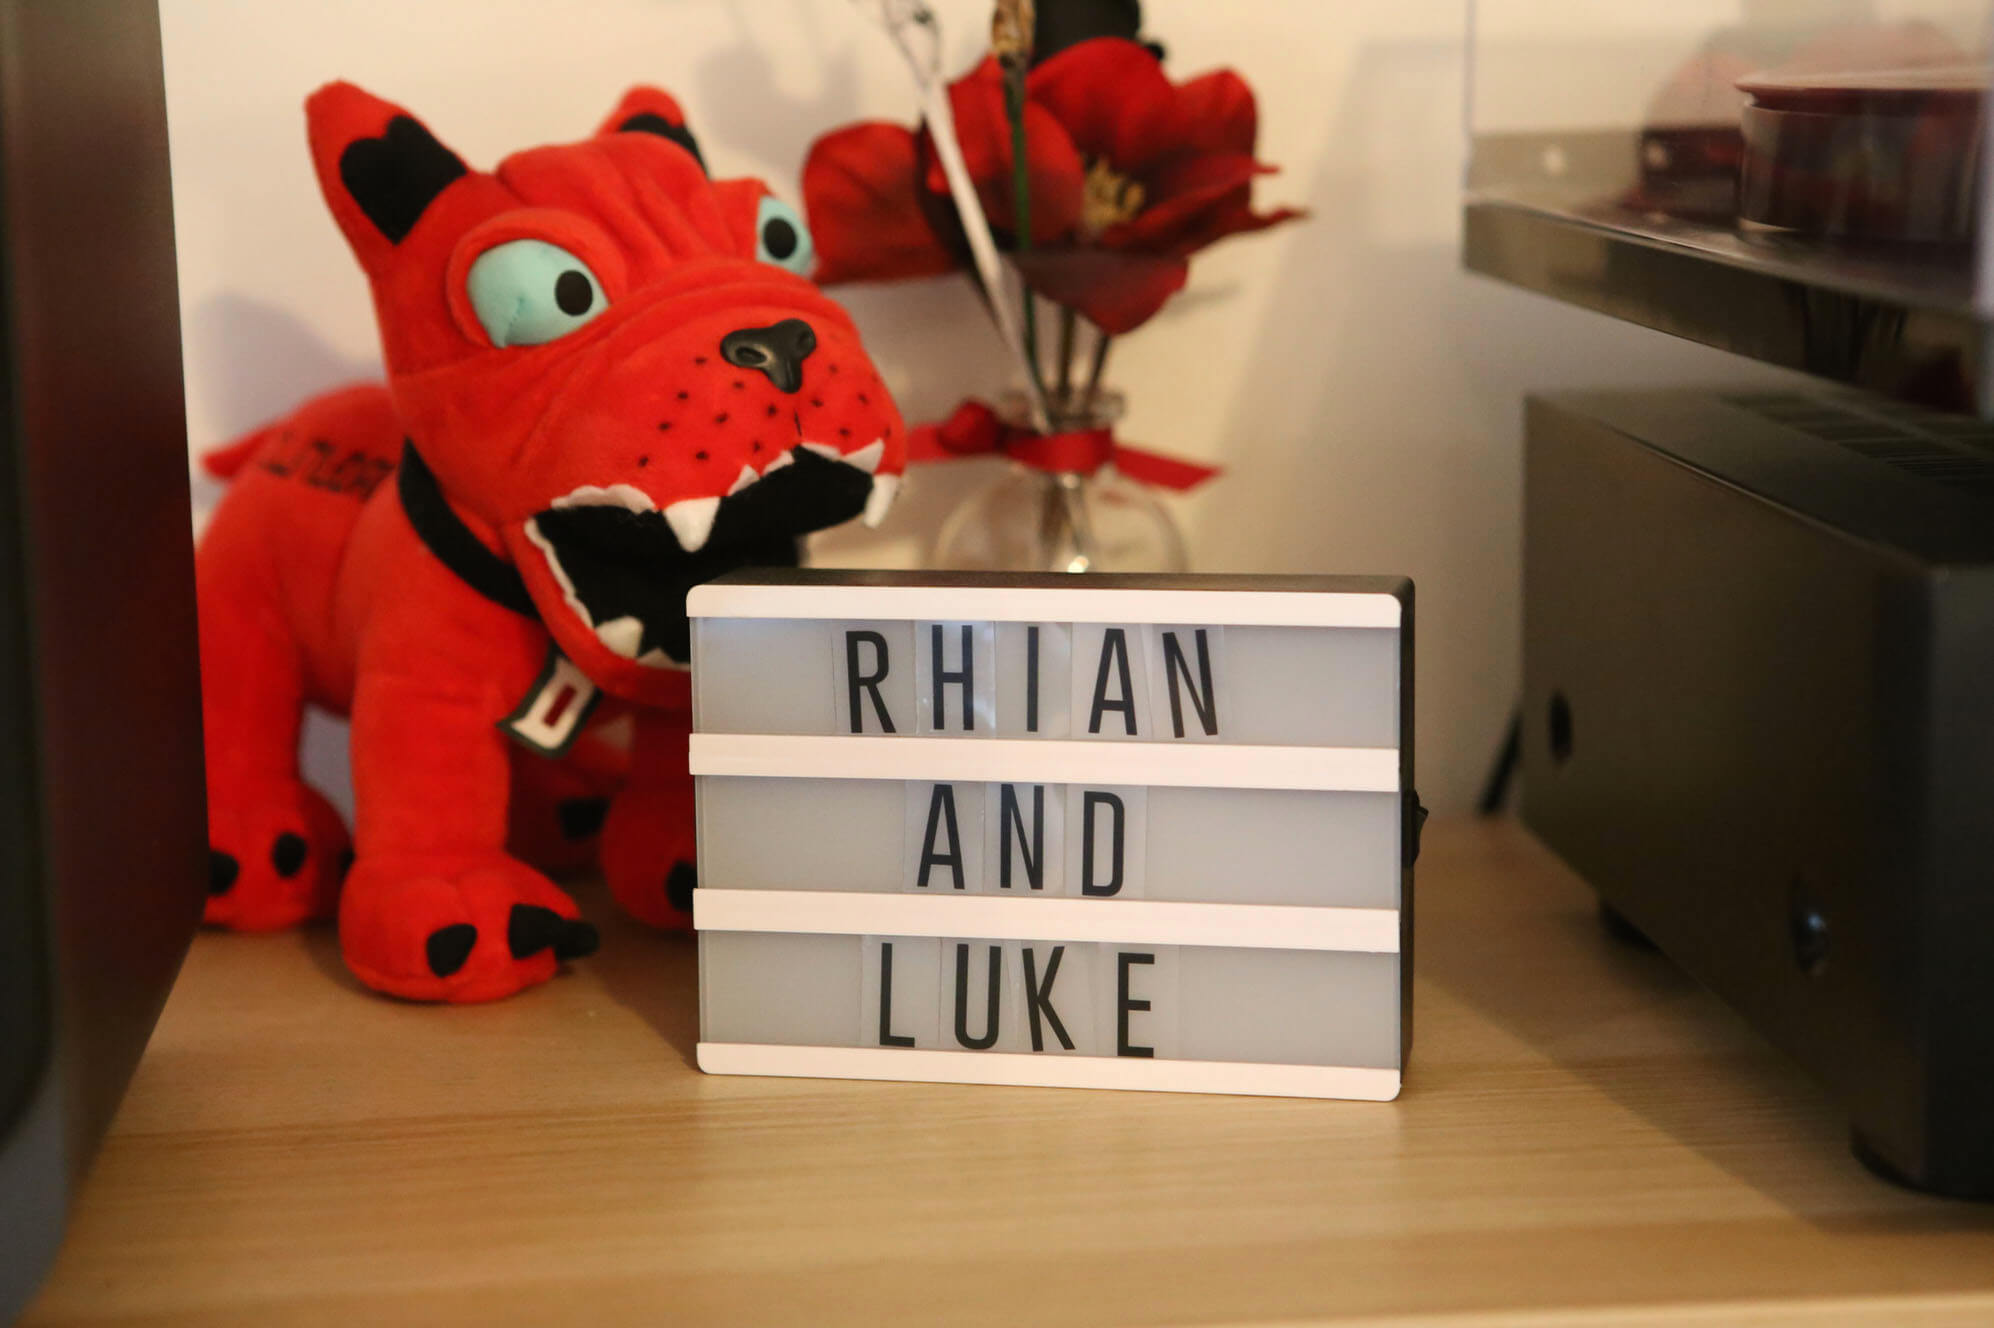 Rhian and Luke home light box